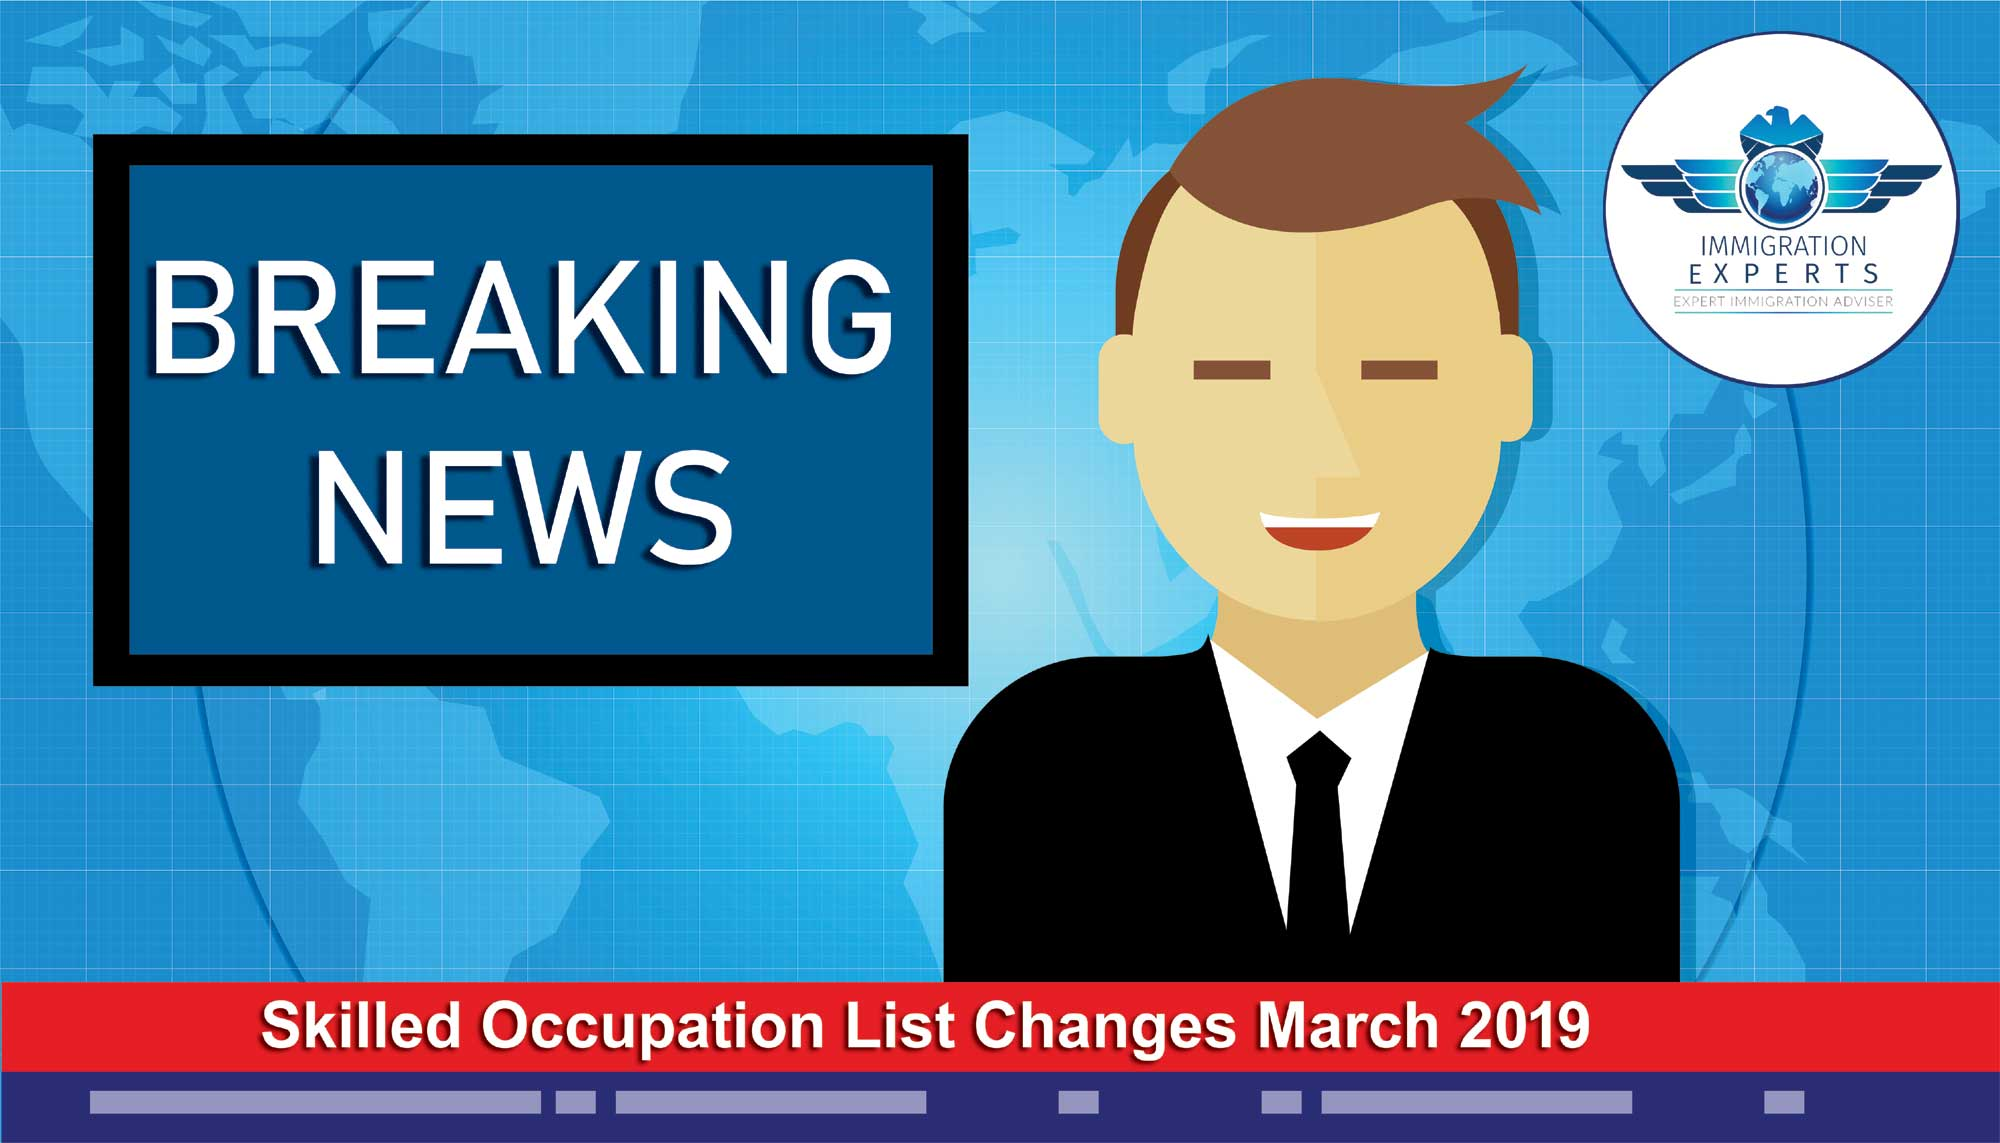 Changes to Skilled Occupation Lists March 2019